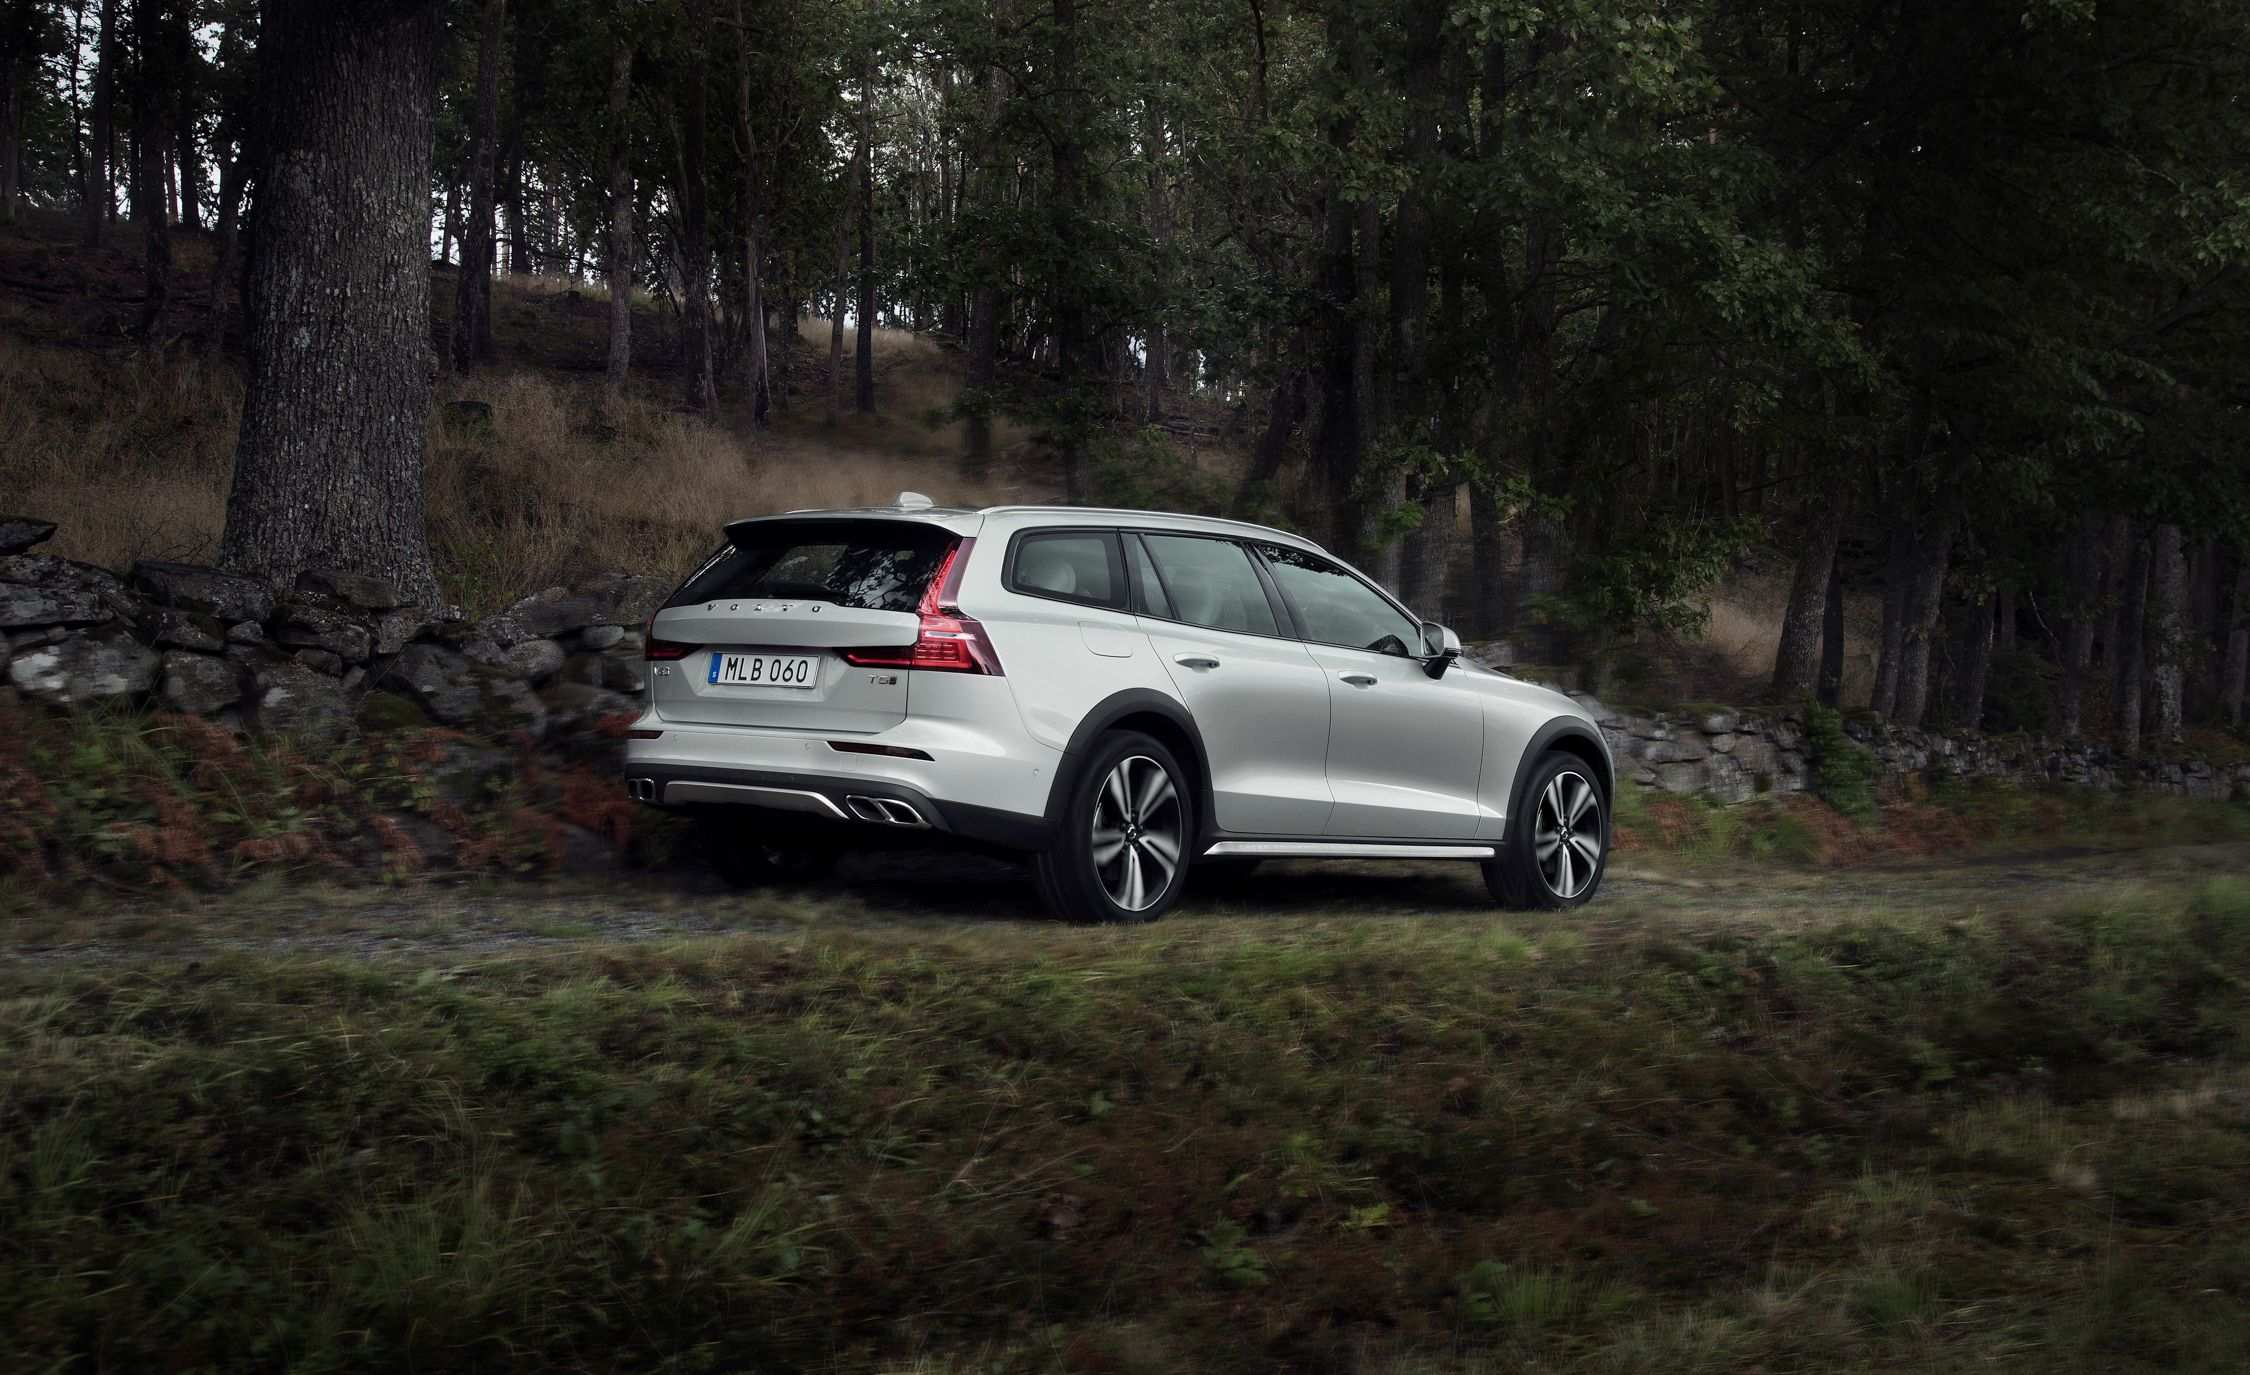 29 New 2020 Volvo V60 Cross Country History with 2020 Volvo V60 Cross Country